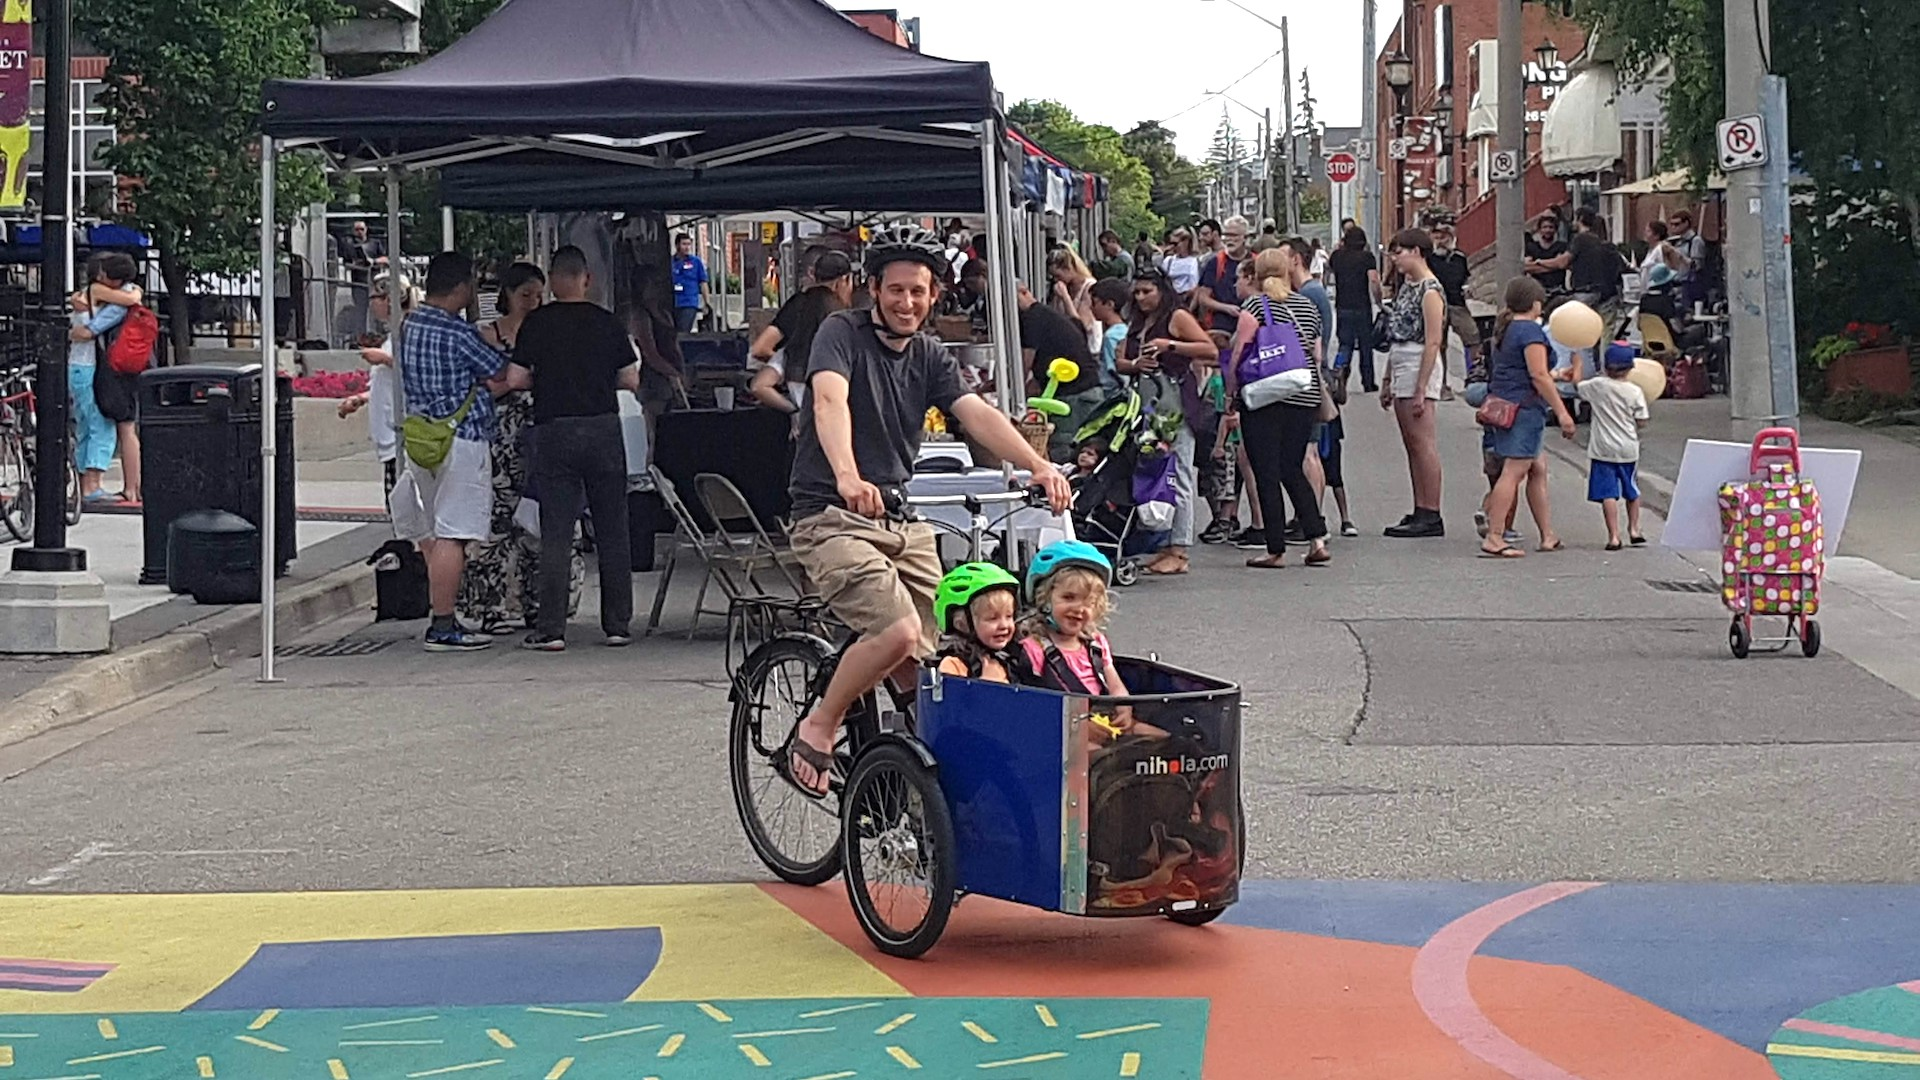 Darren on his cargo bike with two children, on a street filled with pedestrians.